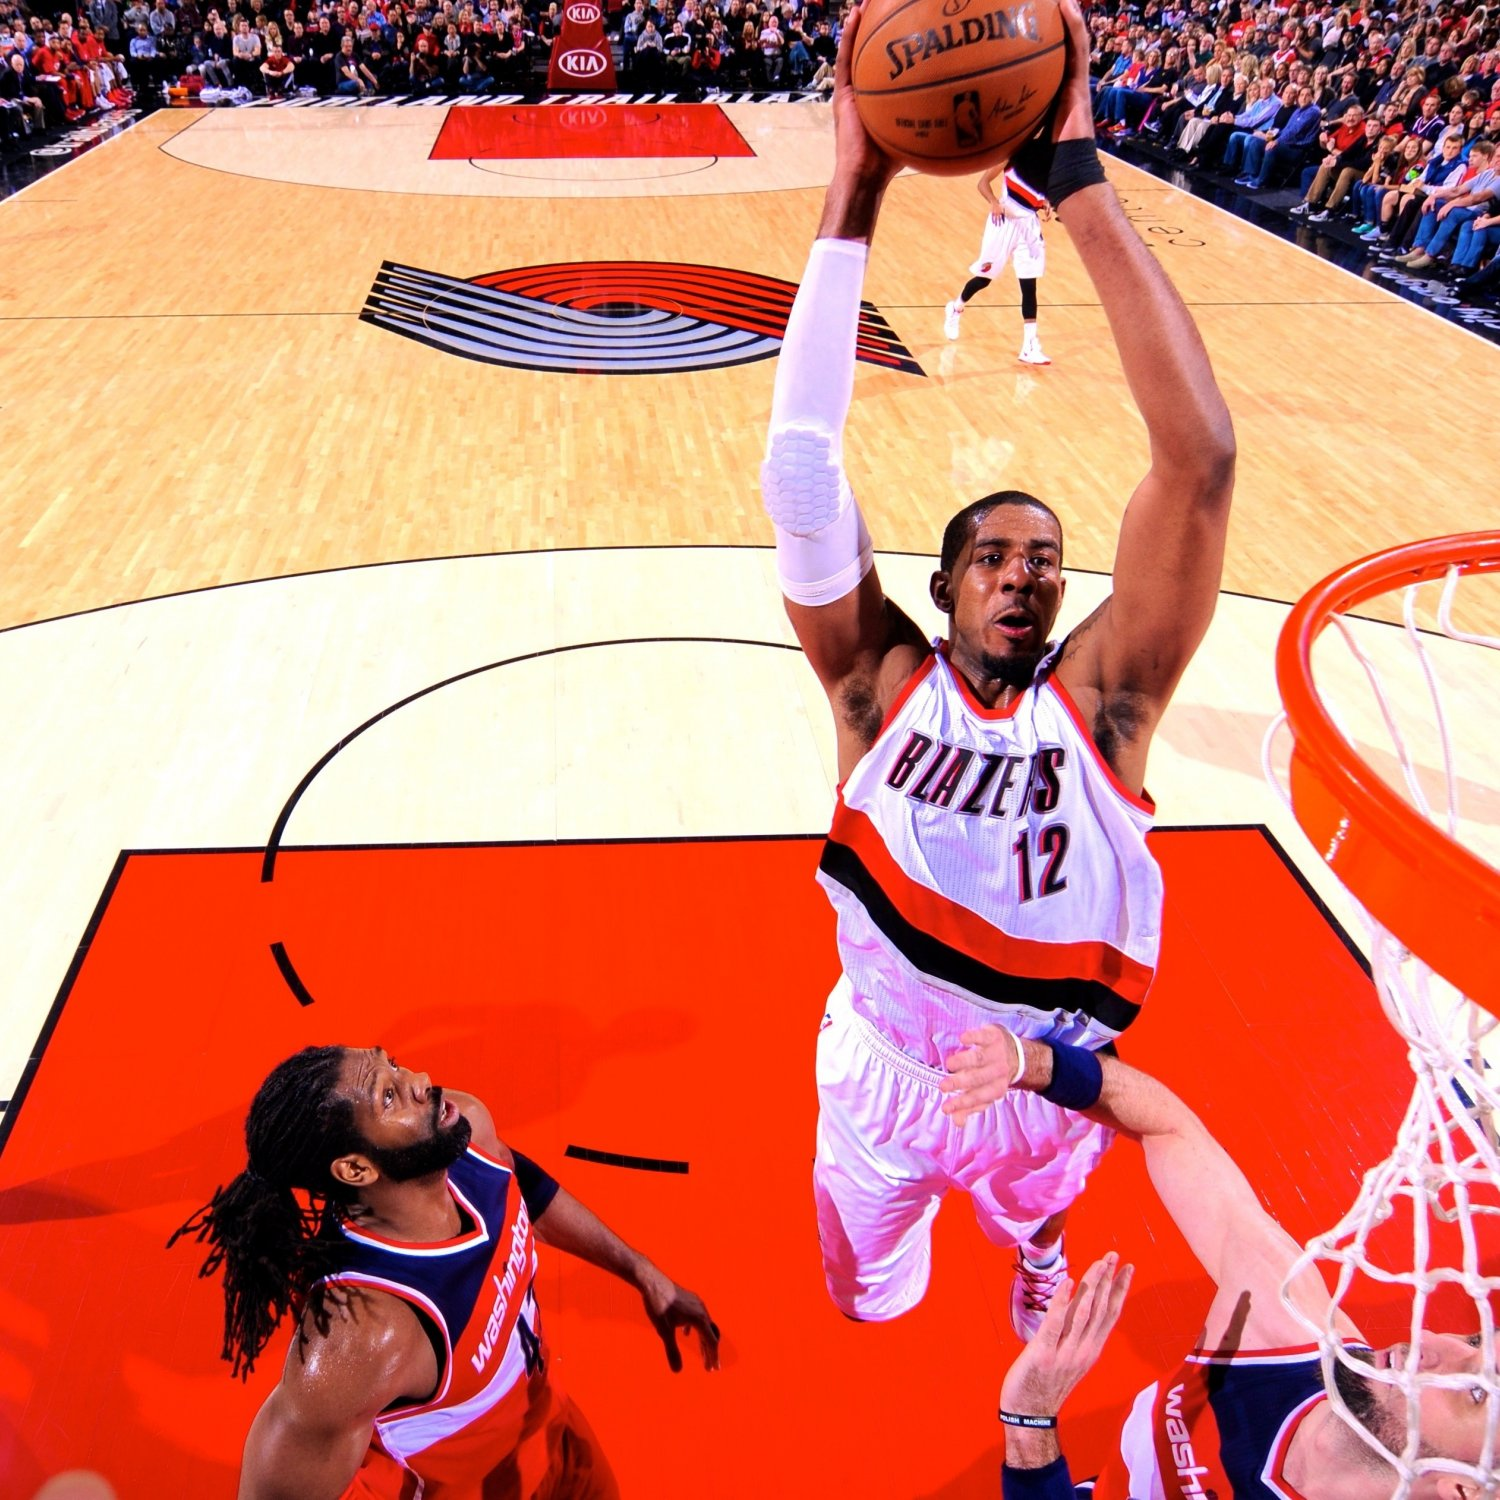 Portland Trail Blazers Live Stream: Washington Wizards Vs. Portland Trail Blazers: Live Score